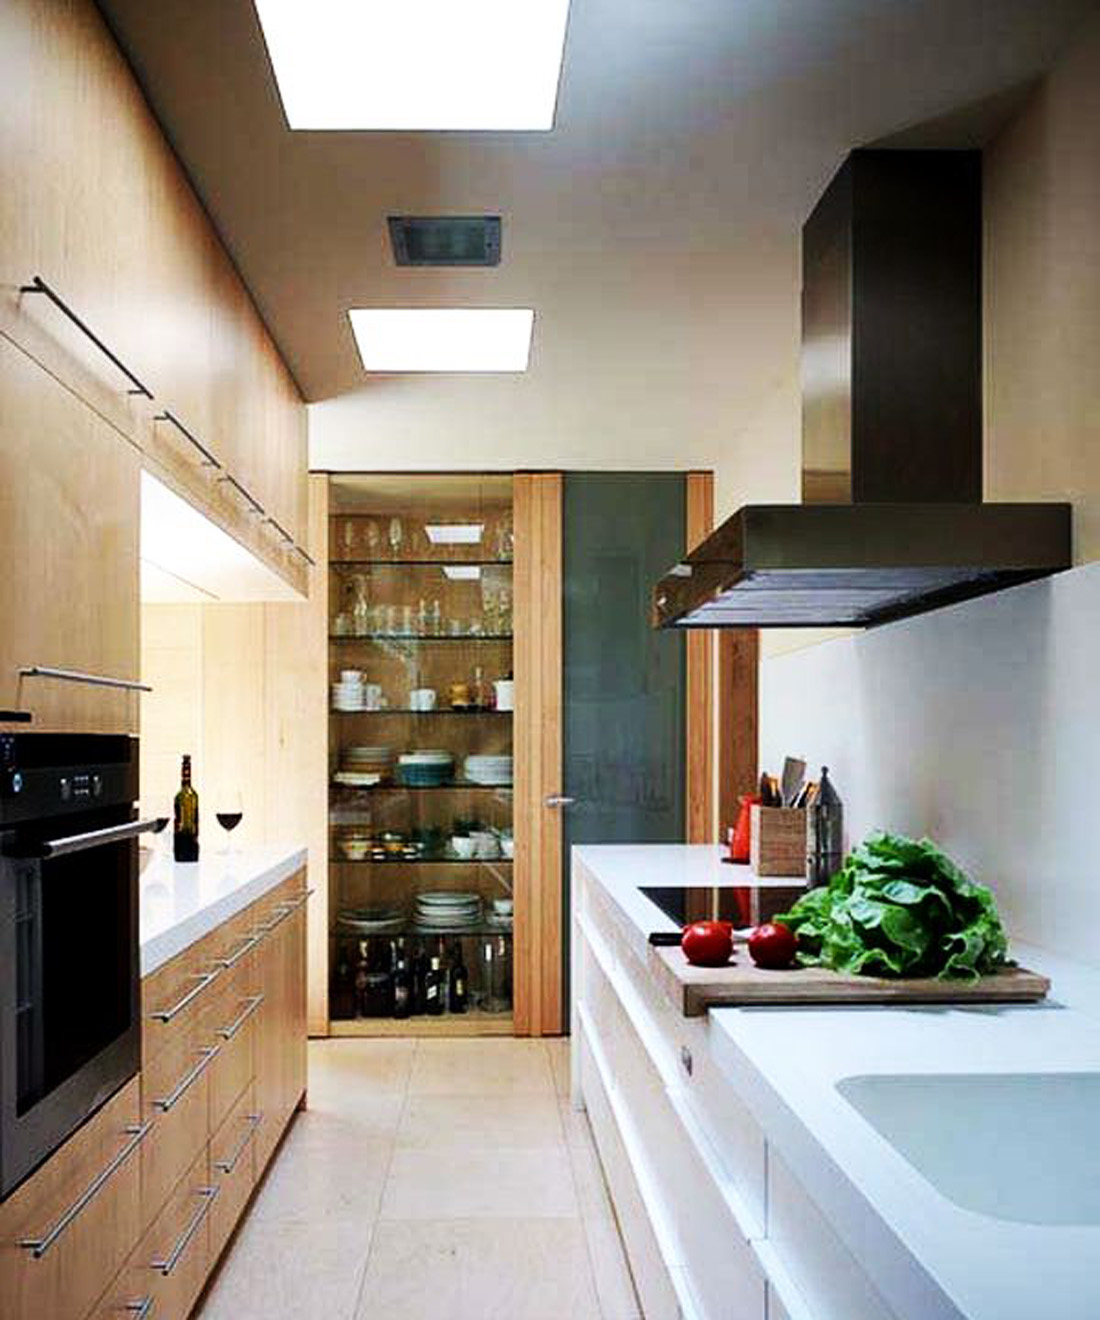 25 Modern Small Kitchen Design Ideas on Modern Kitchen Design  id=32271